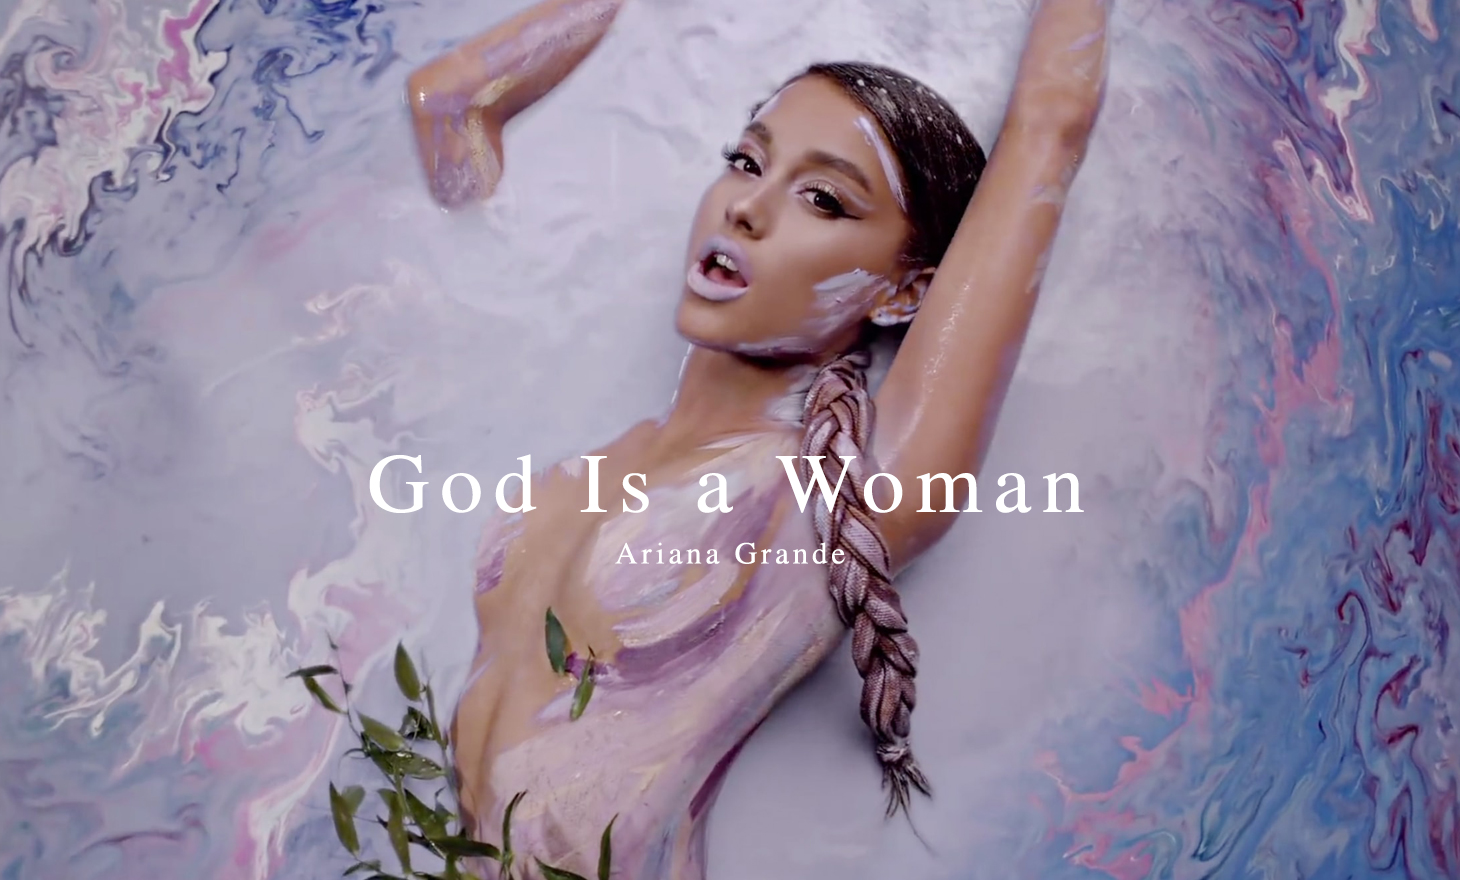 Ariana Grande : God Is a Woman